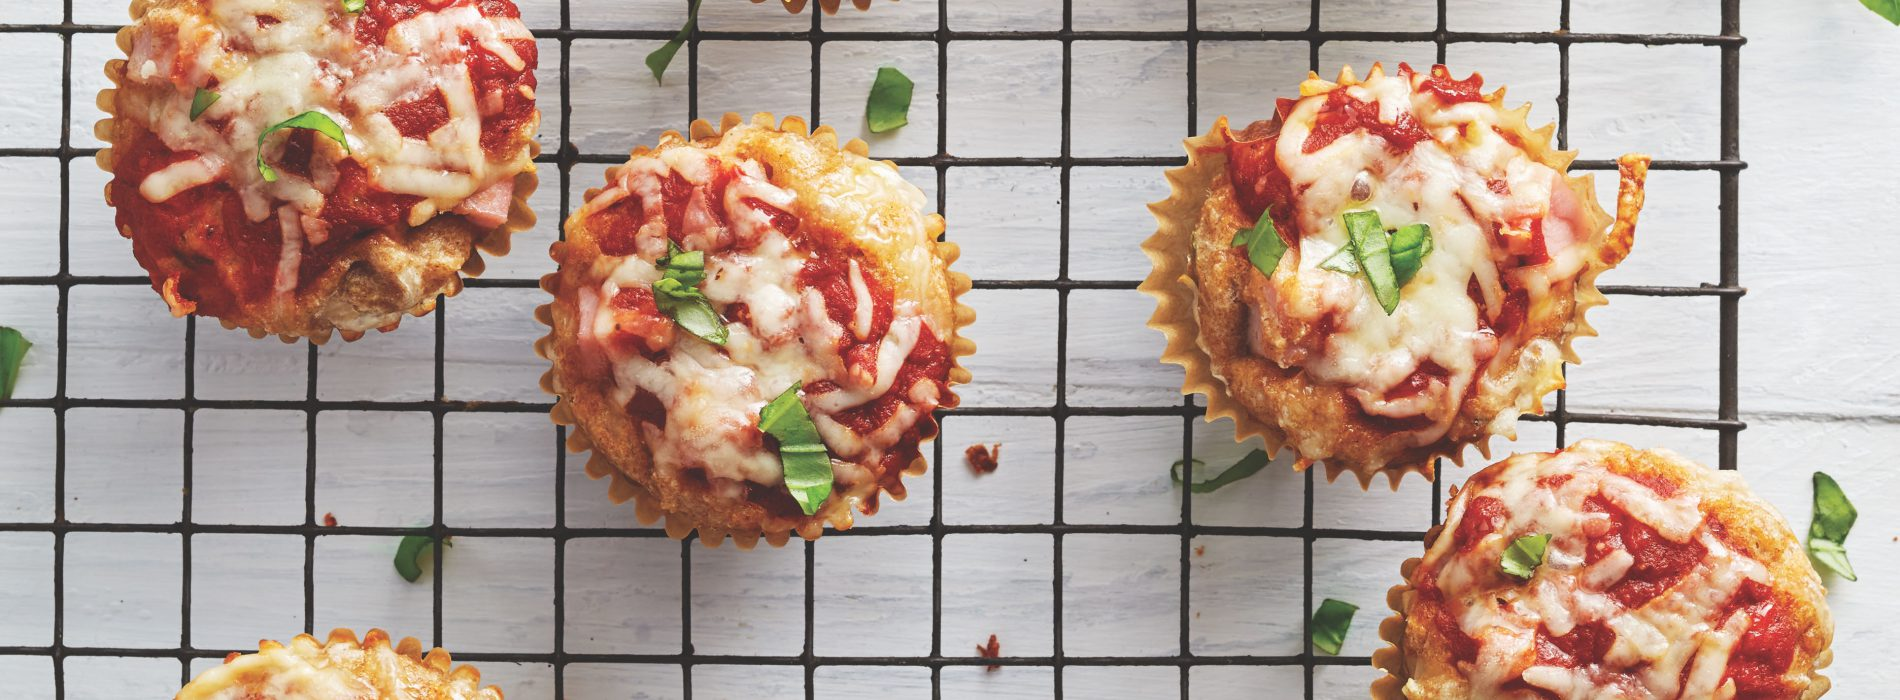 The School Year Survival Cookbook: Hawaiian Pizza Muffins